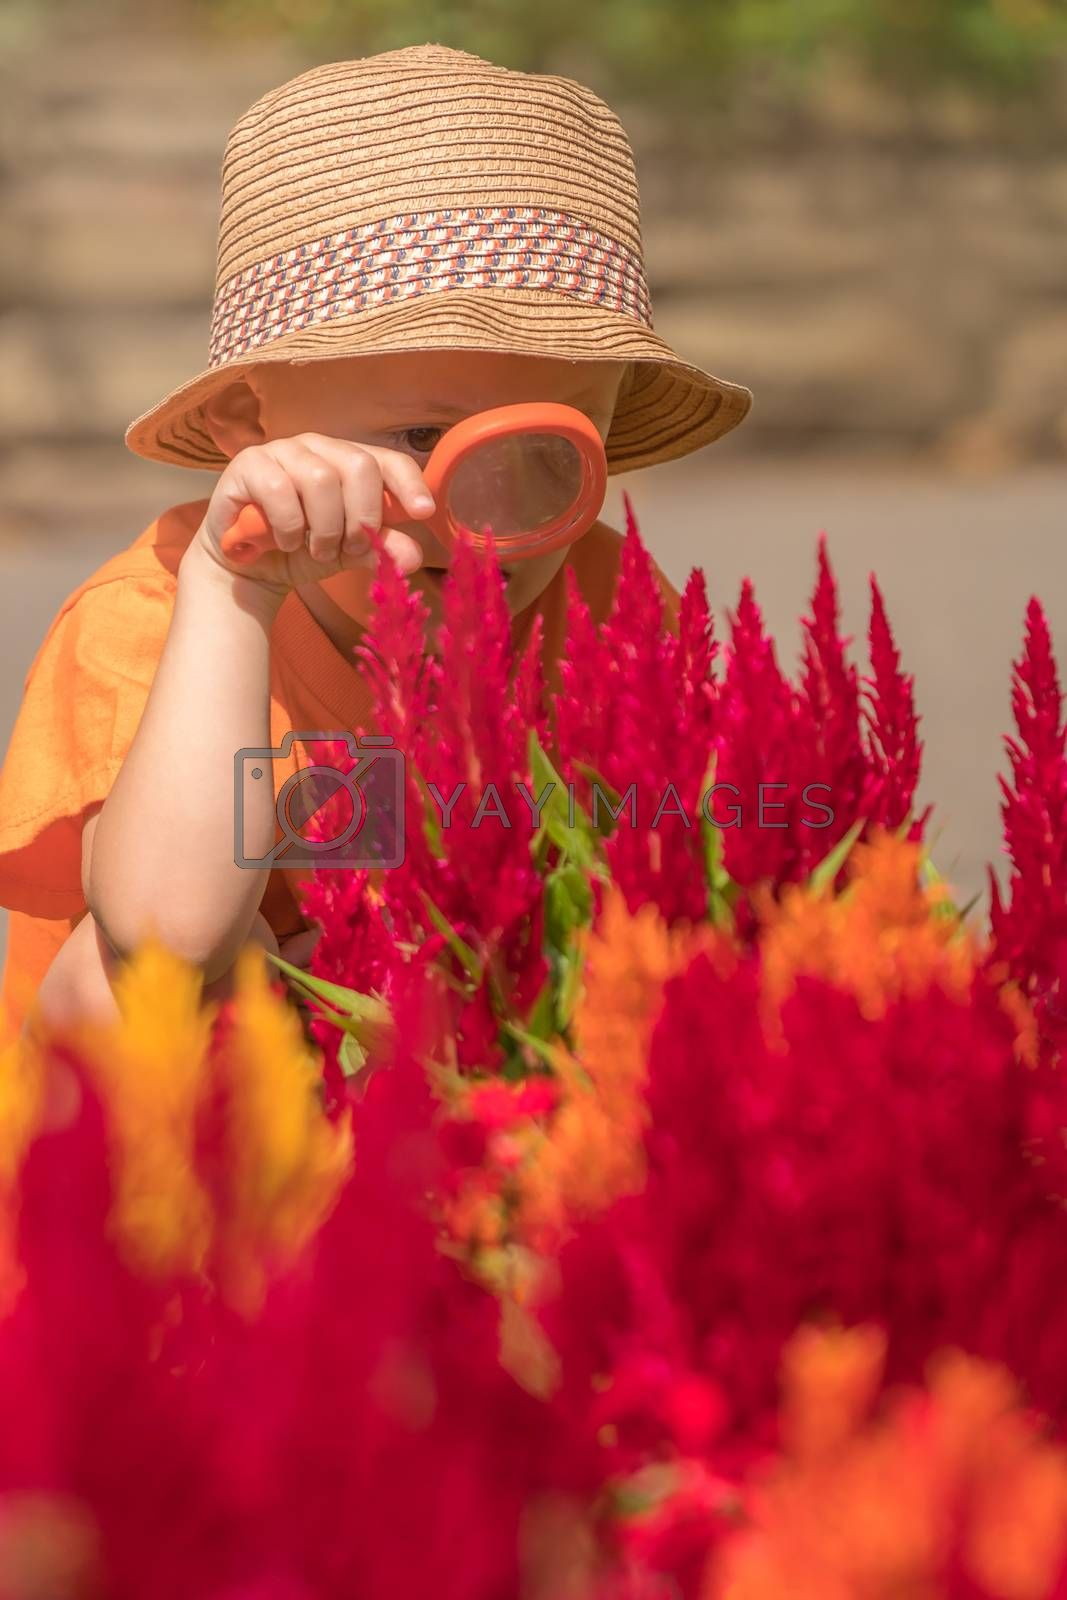 Photo of cute little happy Caucasian boy with a straw hat holding magnifying glass while looking for small insects among the blooming colorful flowers in the garden.